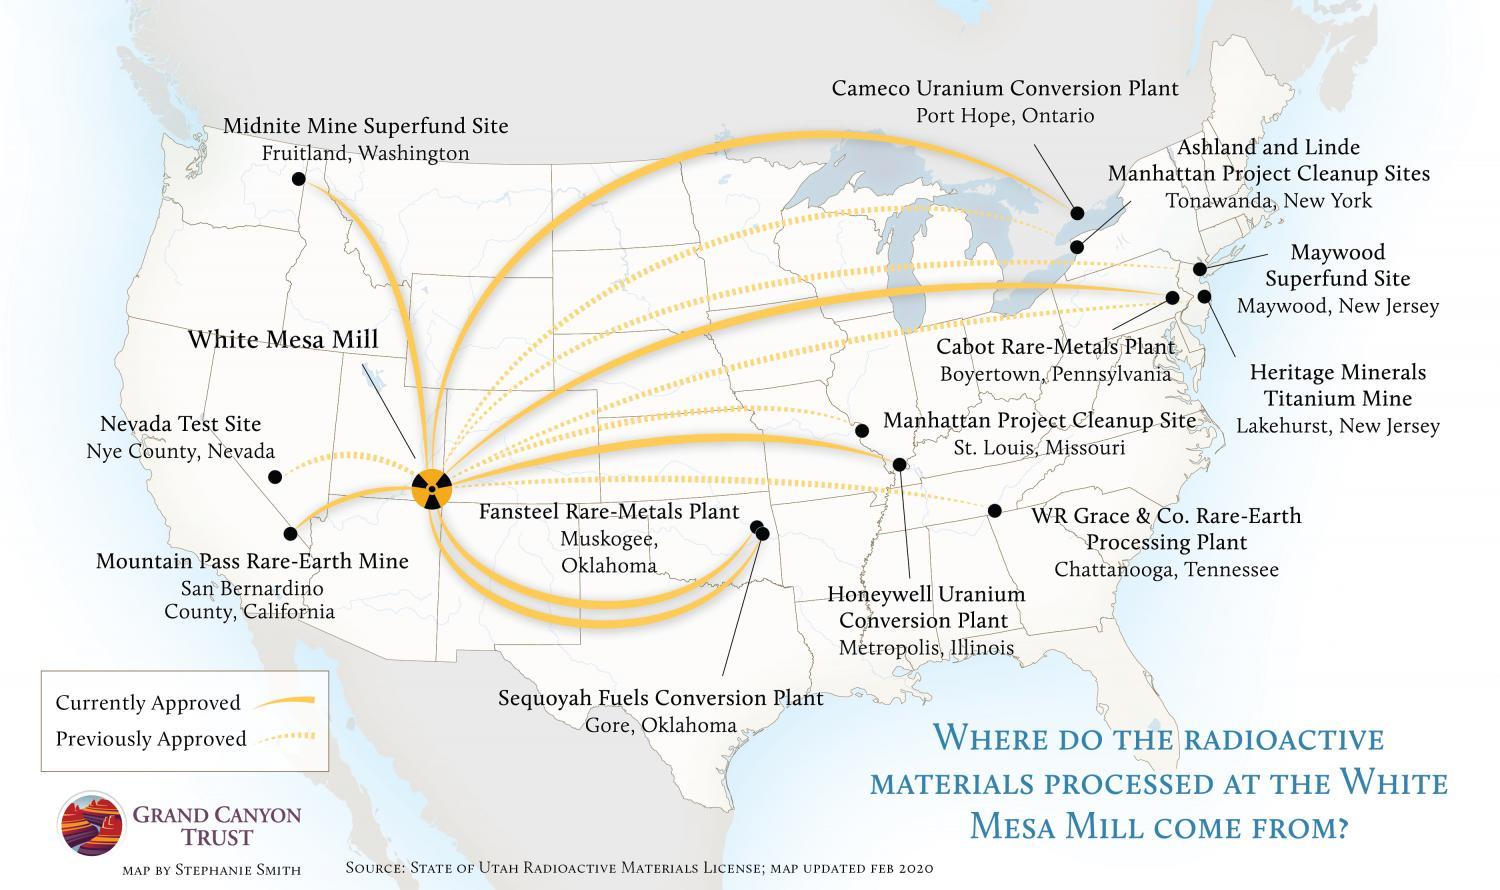 Map of where radioactive materials processed at White Mesa Mill come from.